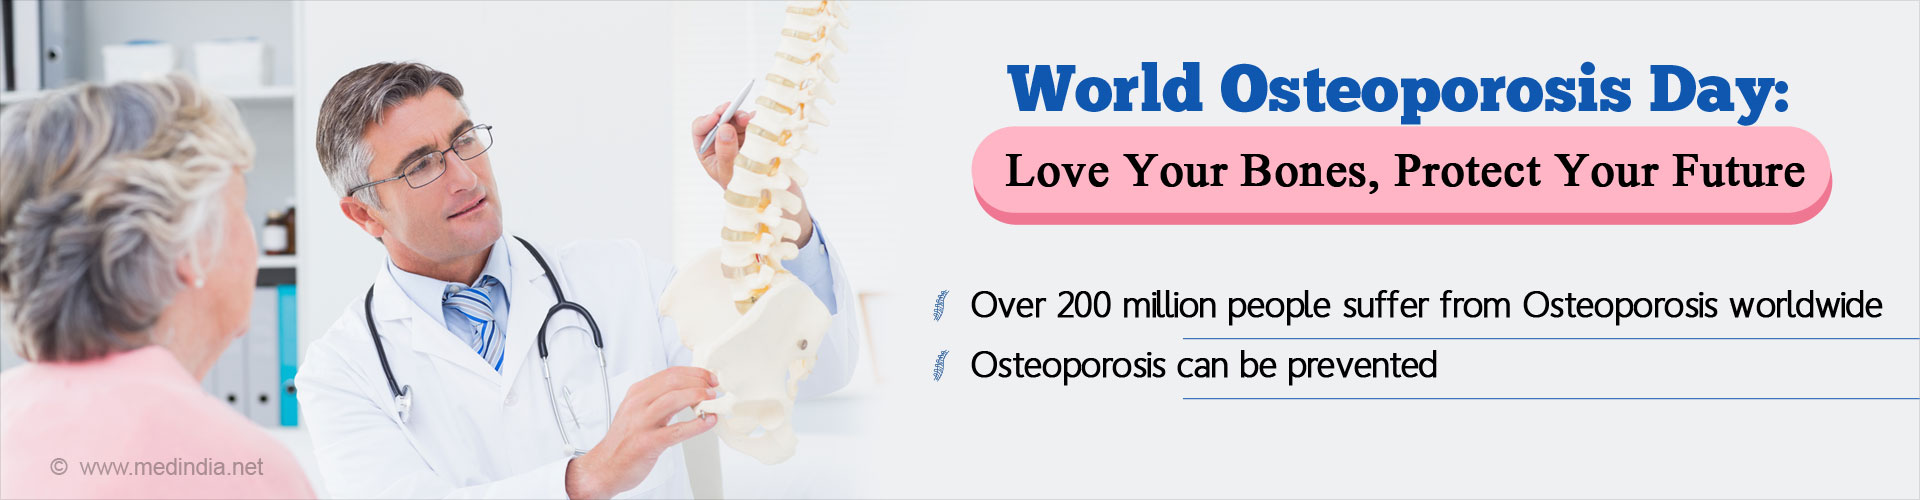 World Osteoporosis Day: Love Your Bones, Protect Your Future